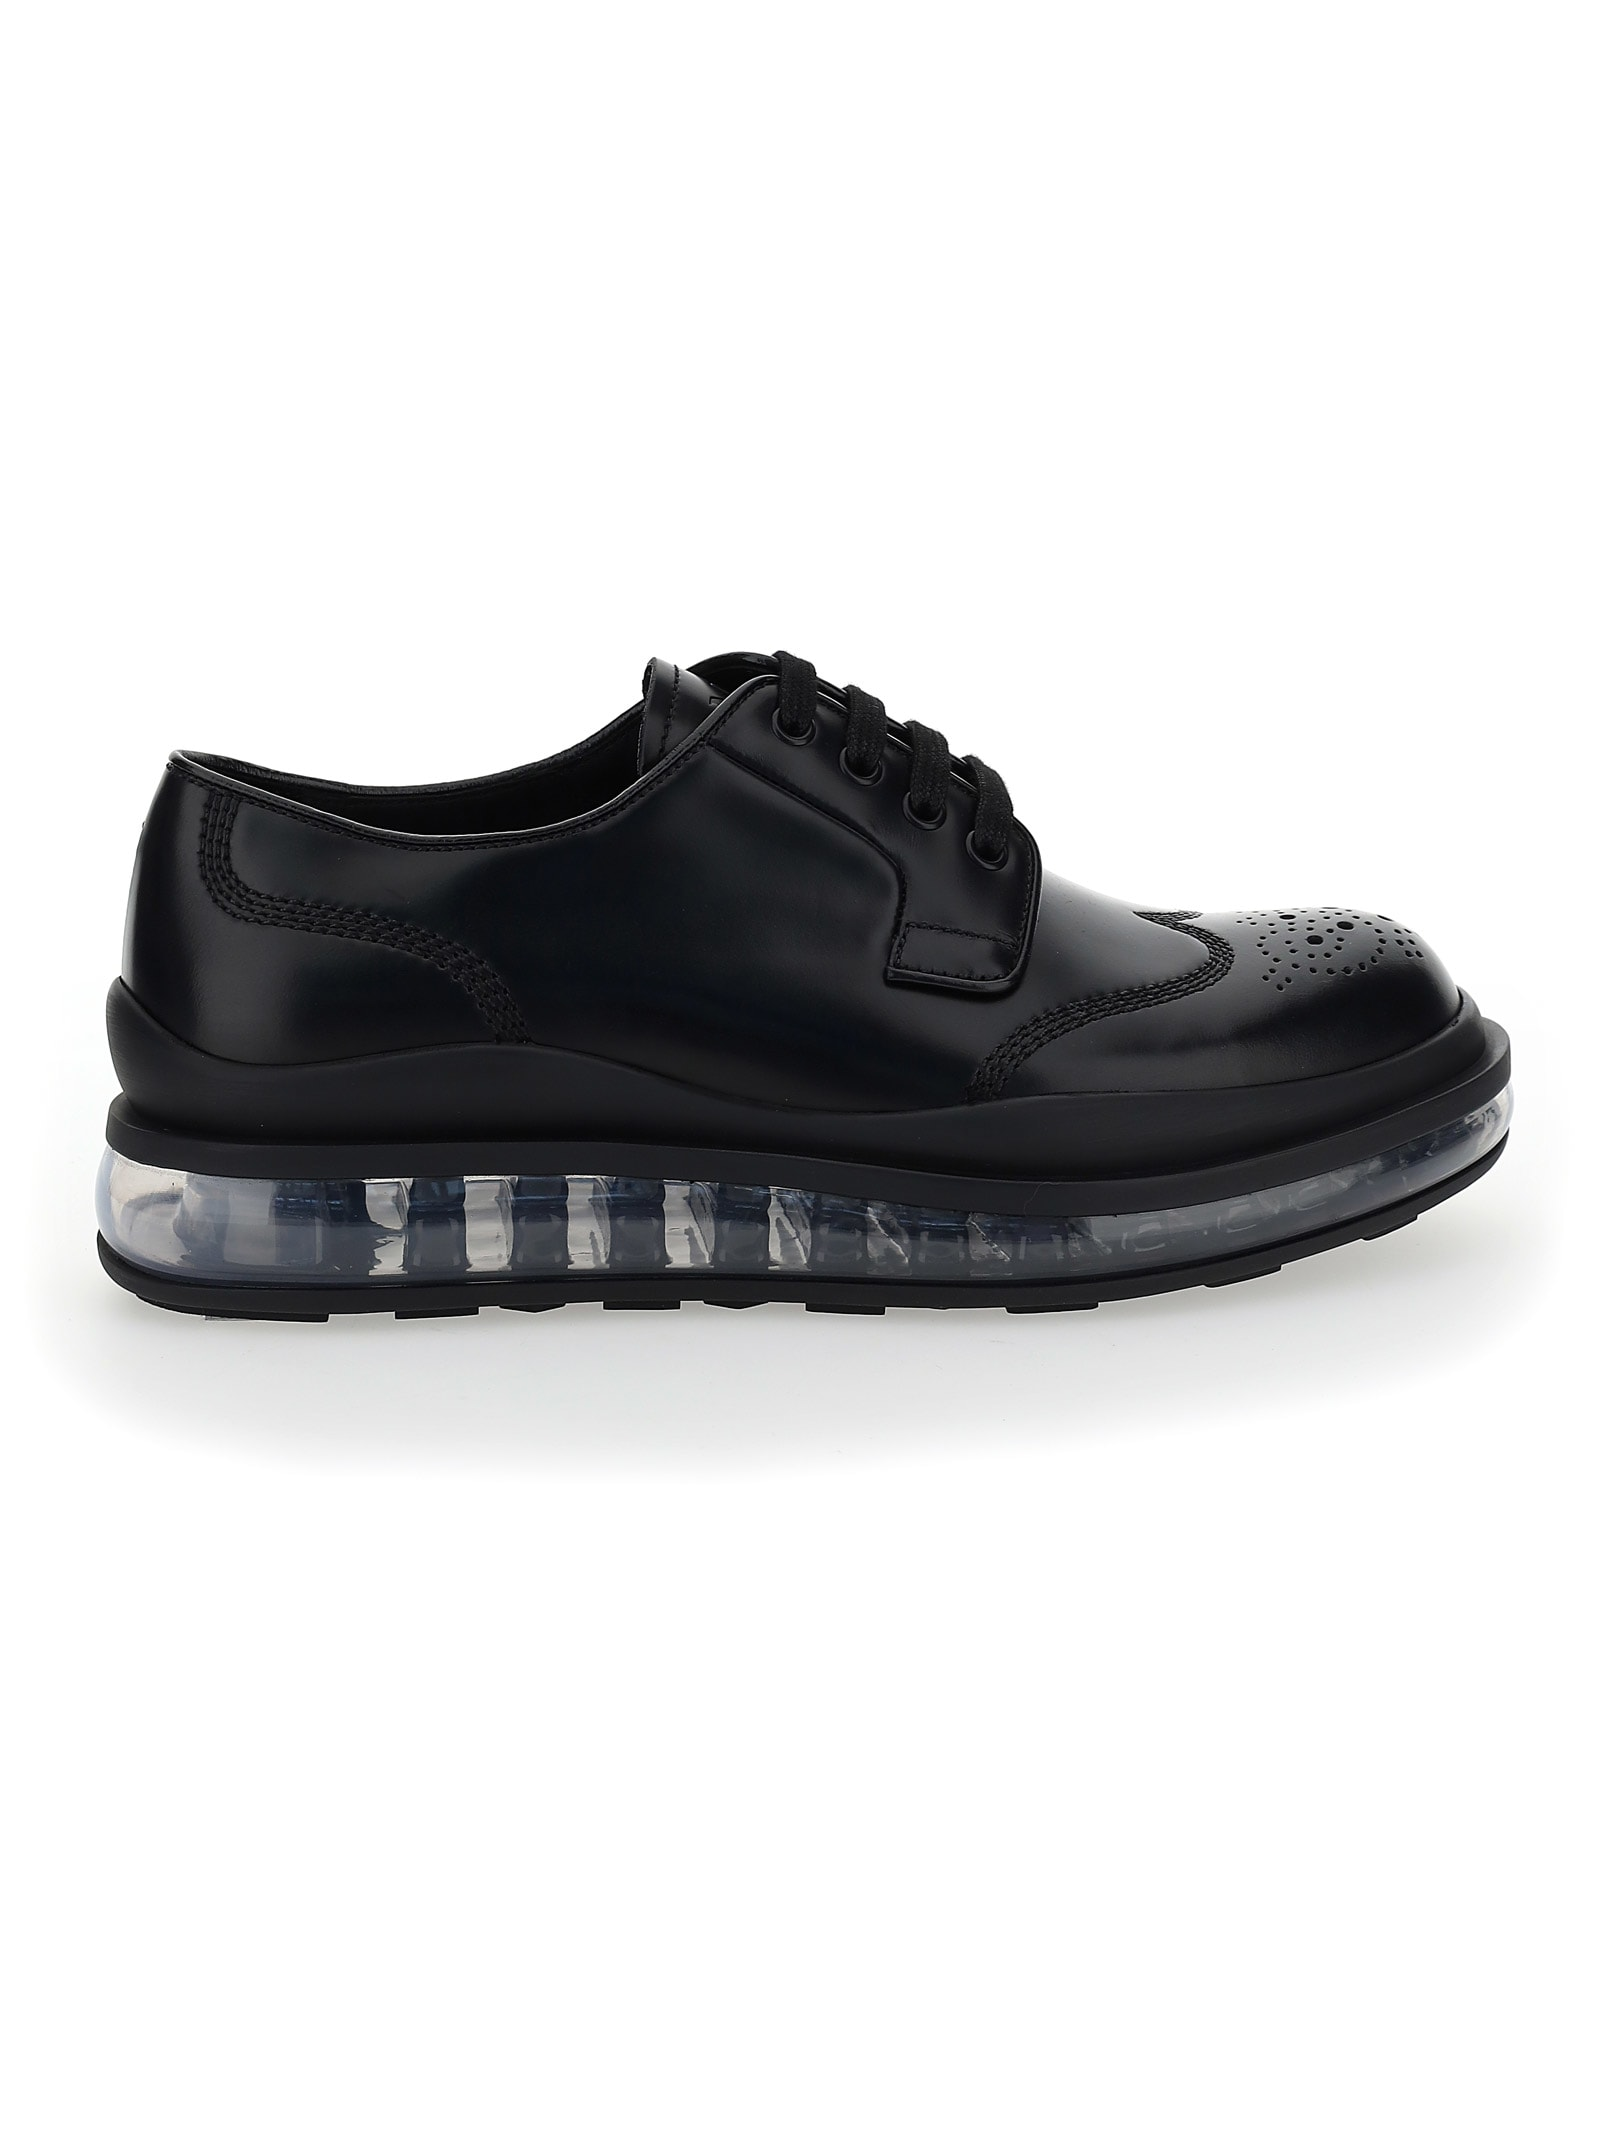 Prada Leathers LACE UP SHOES